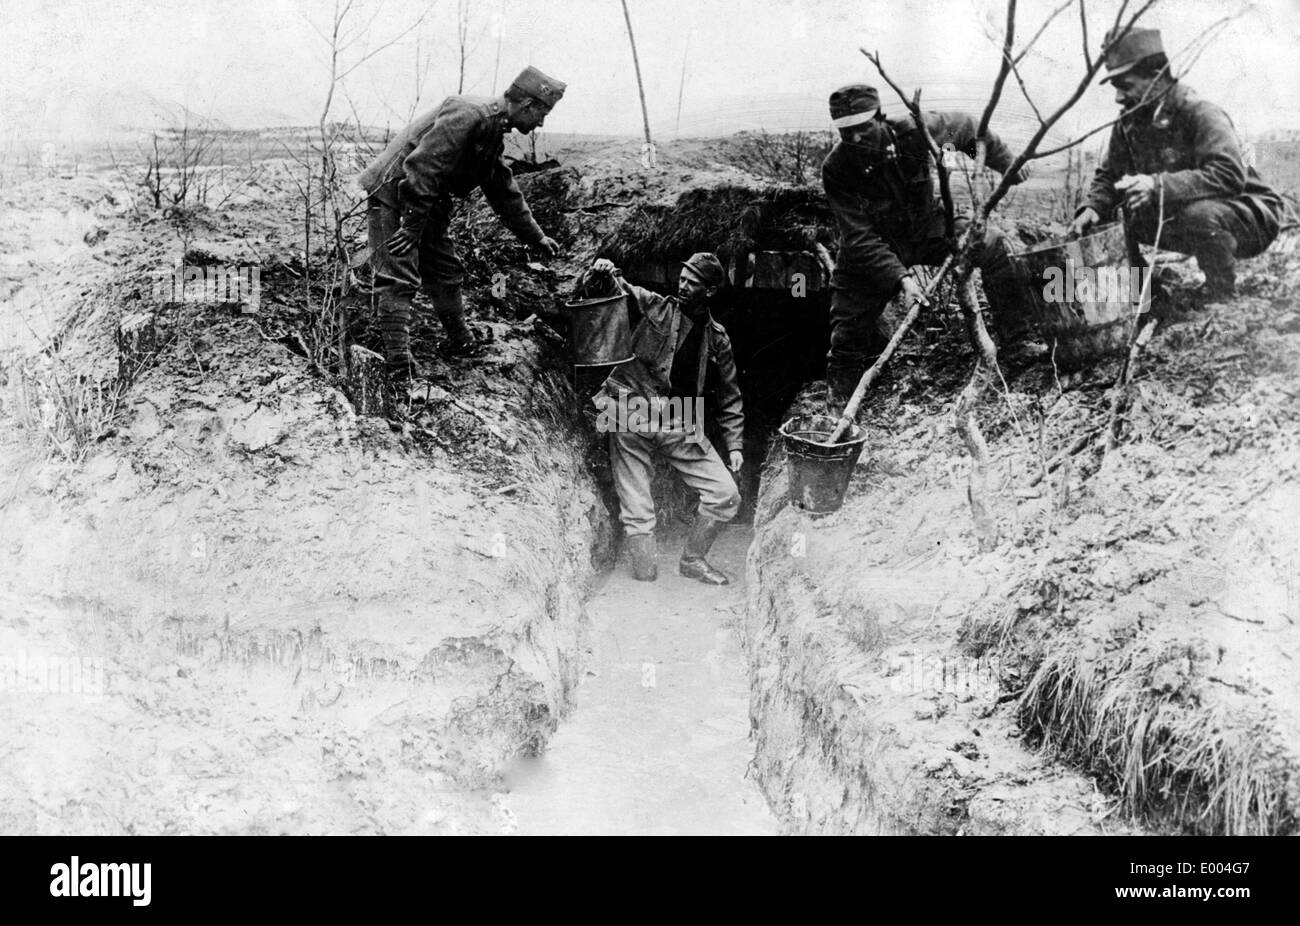 Soldiers bail water out of a trench, 1917 - Stock Image